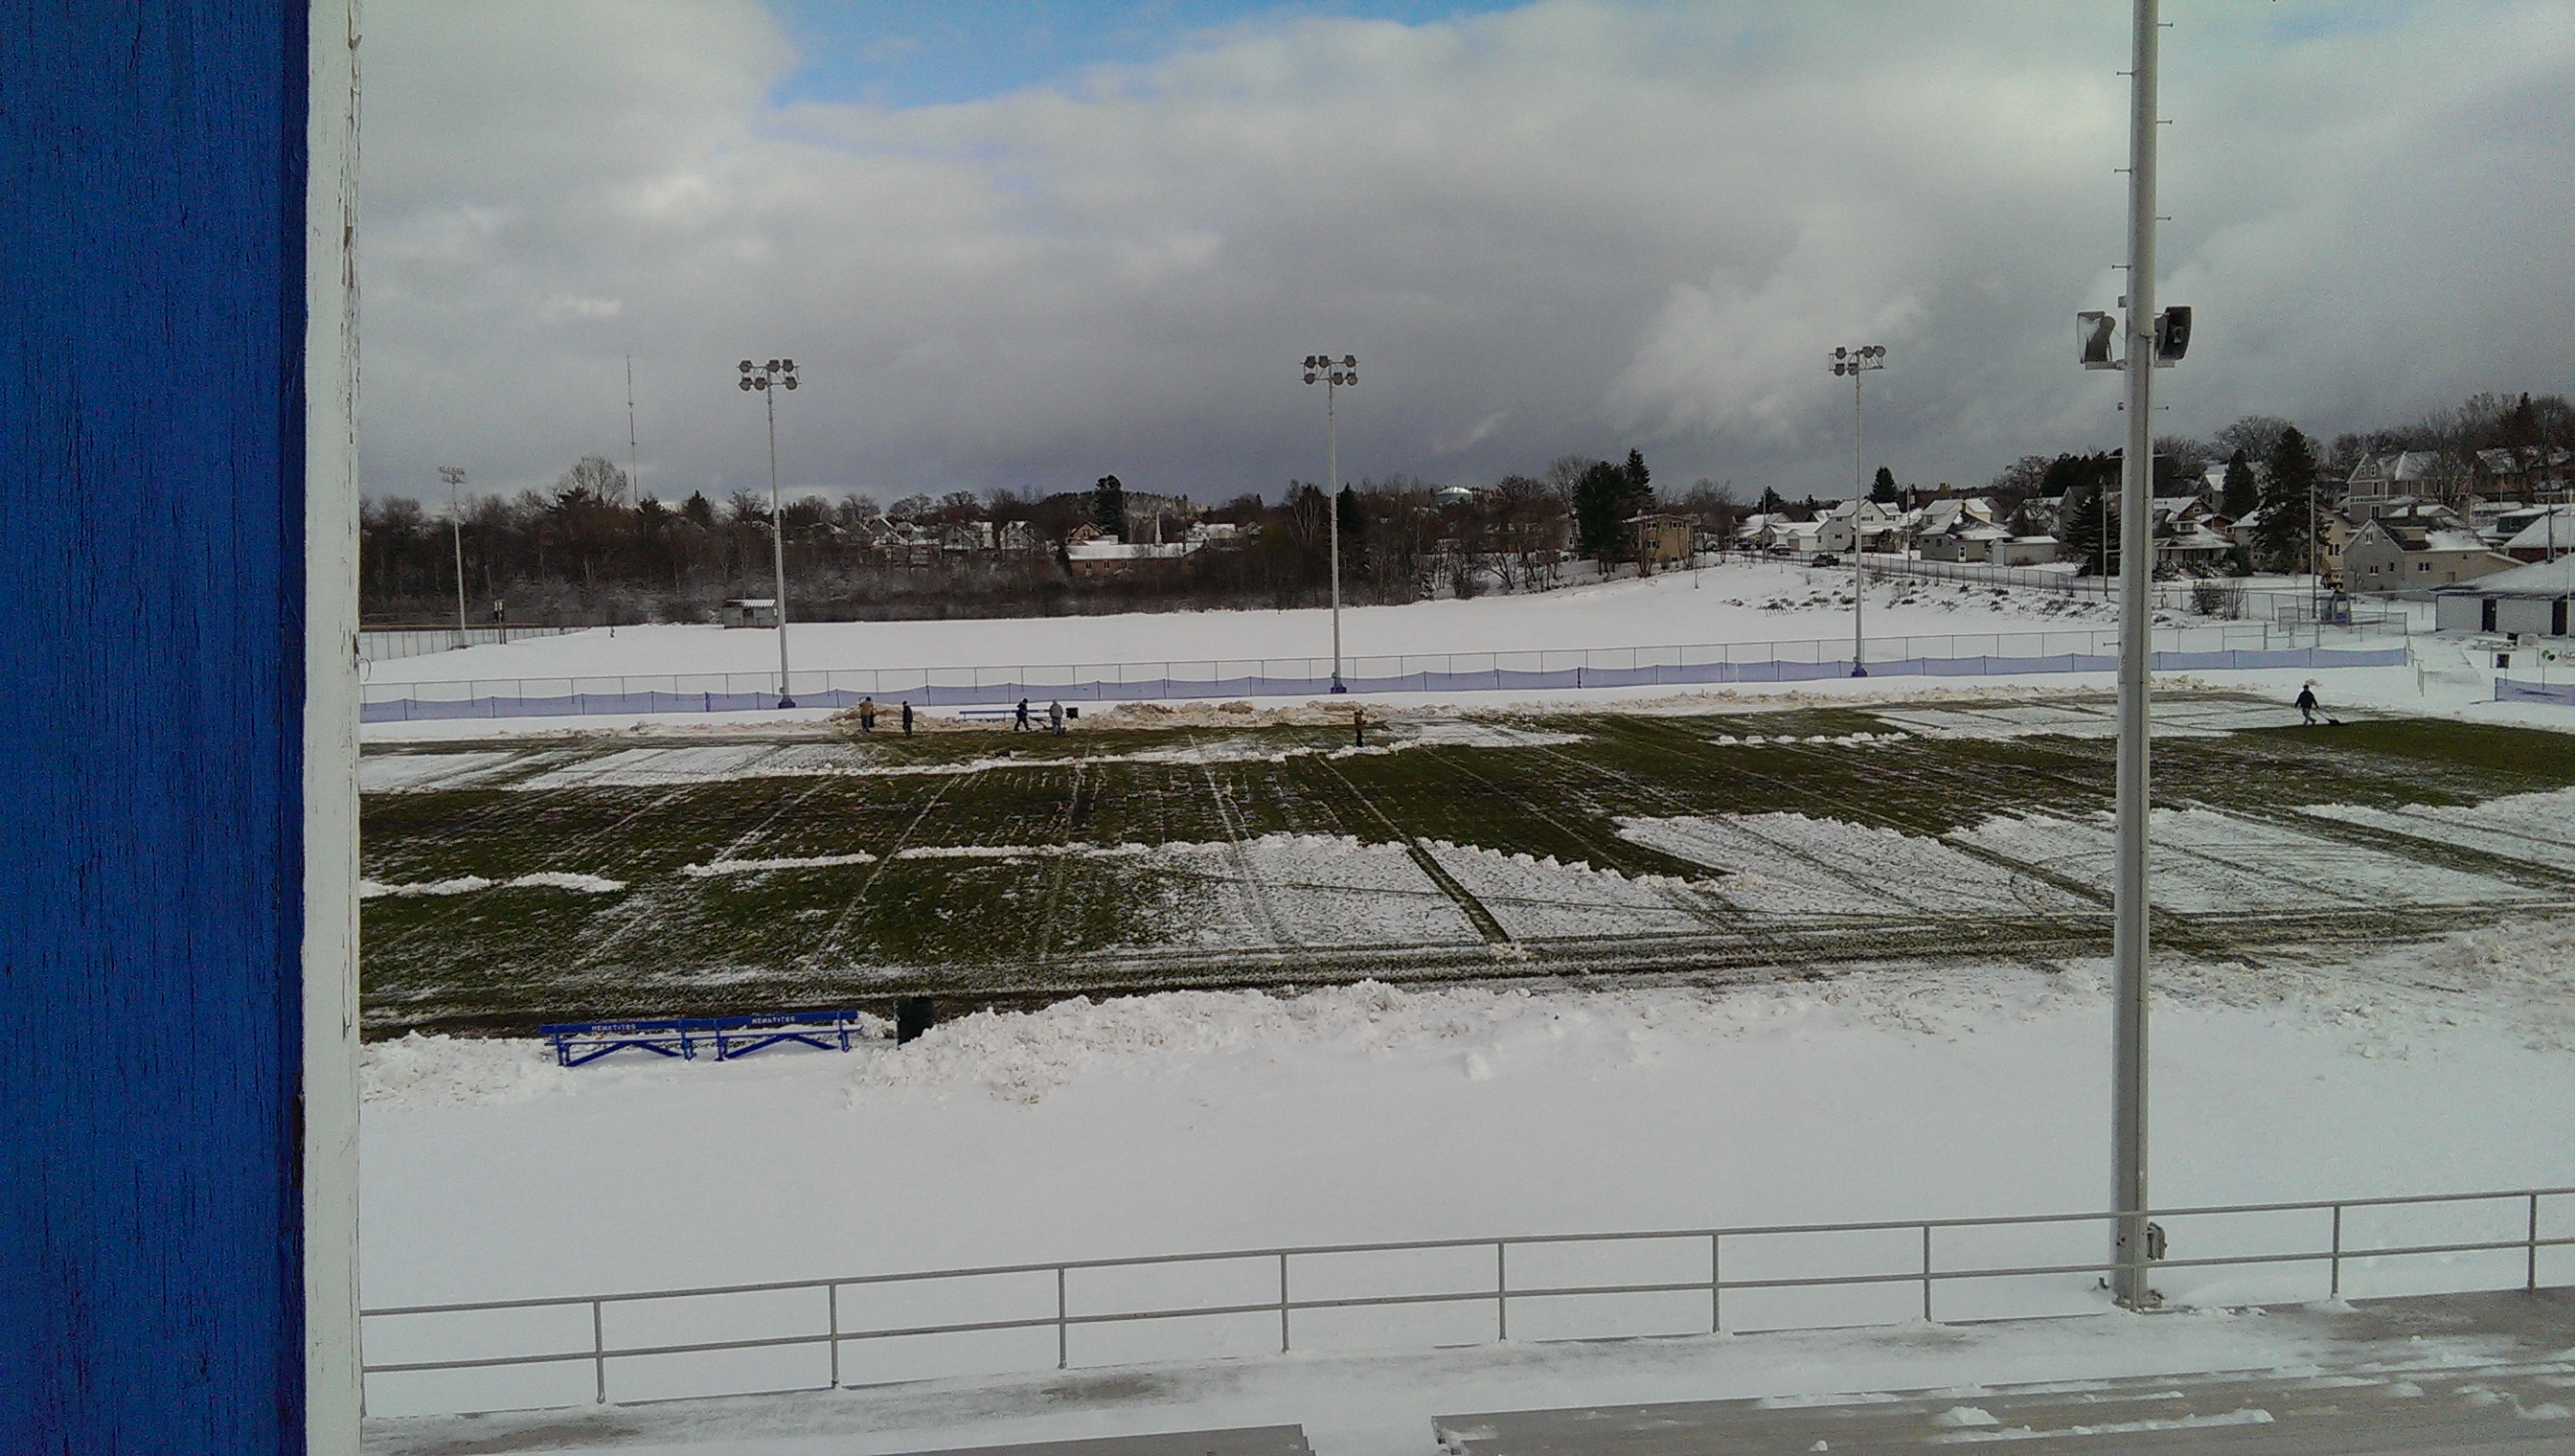 Volunteers have made it playable.